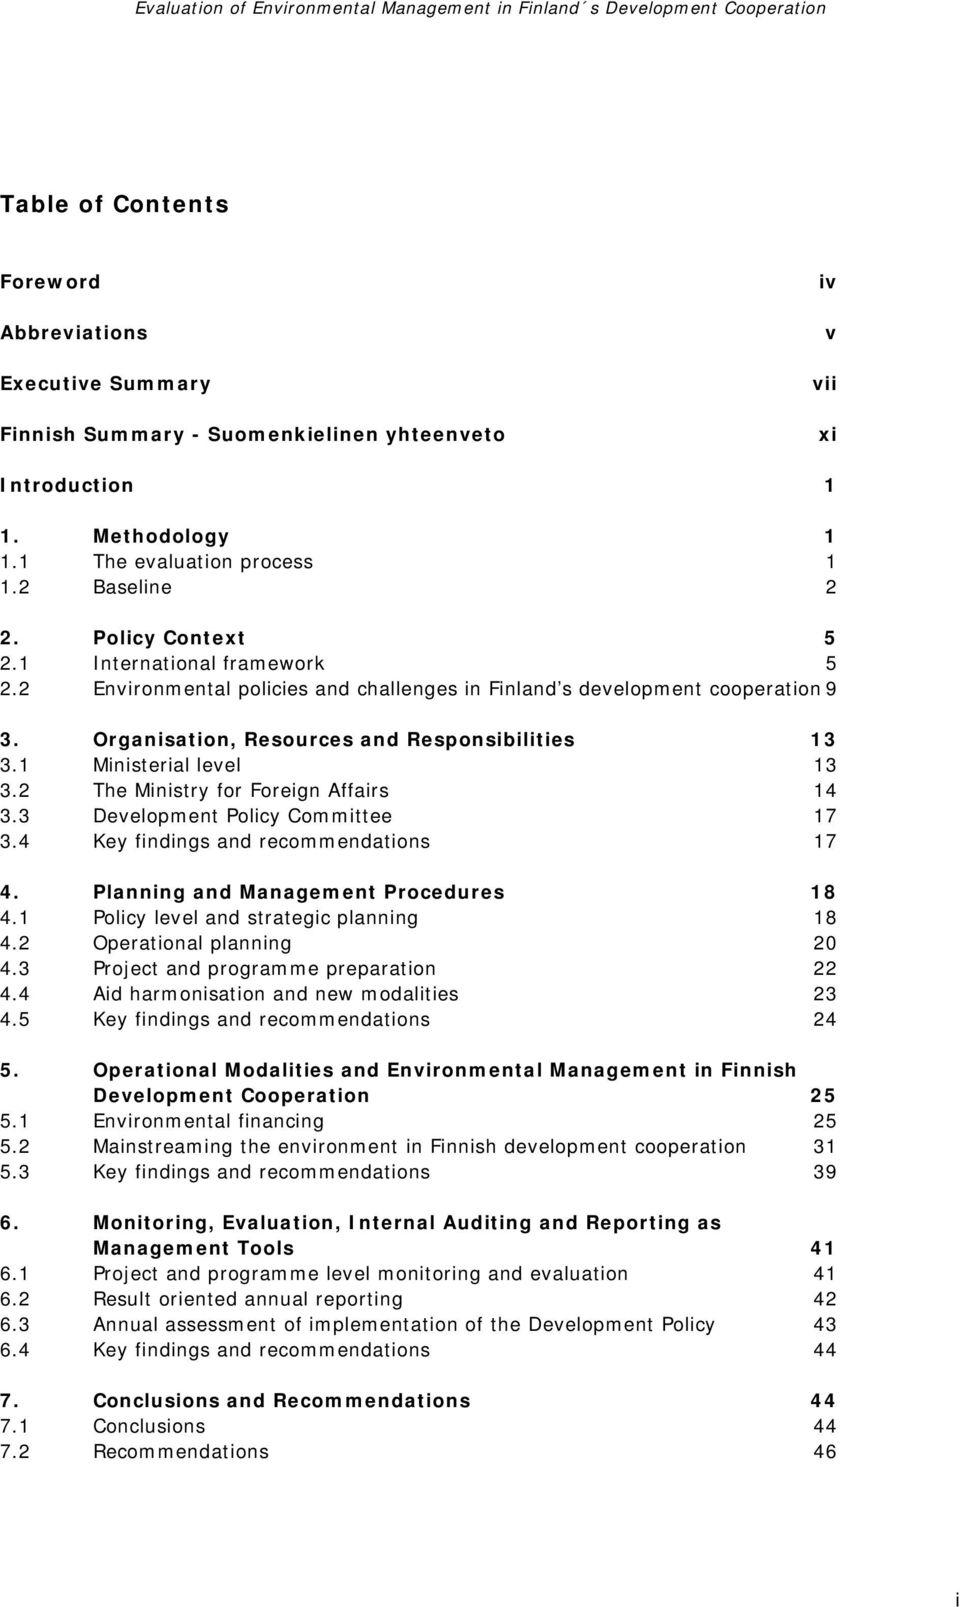 1 Ministerial level 13 3.2 The Ministry for Foreign Affairs 14 3.3 Development Policy Committee 17 3.4 Key findings and recommendations 17 4. Planning and Management Procedures 18 4.